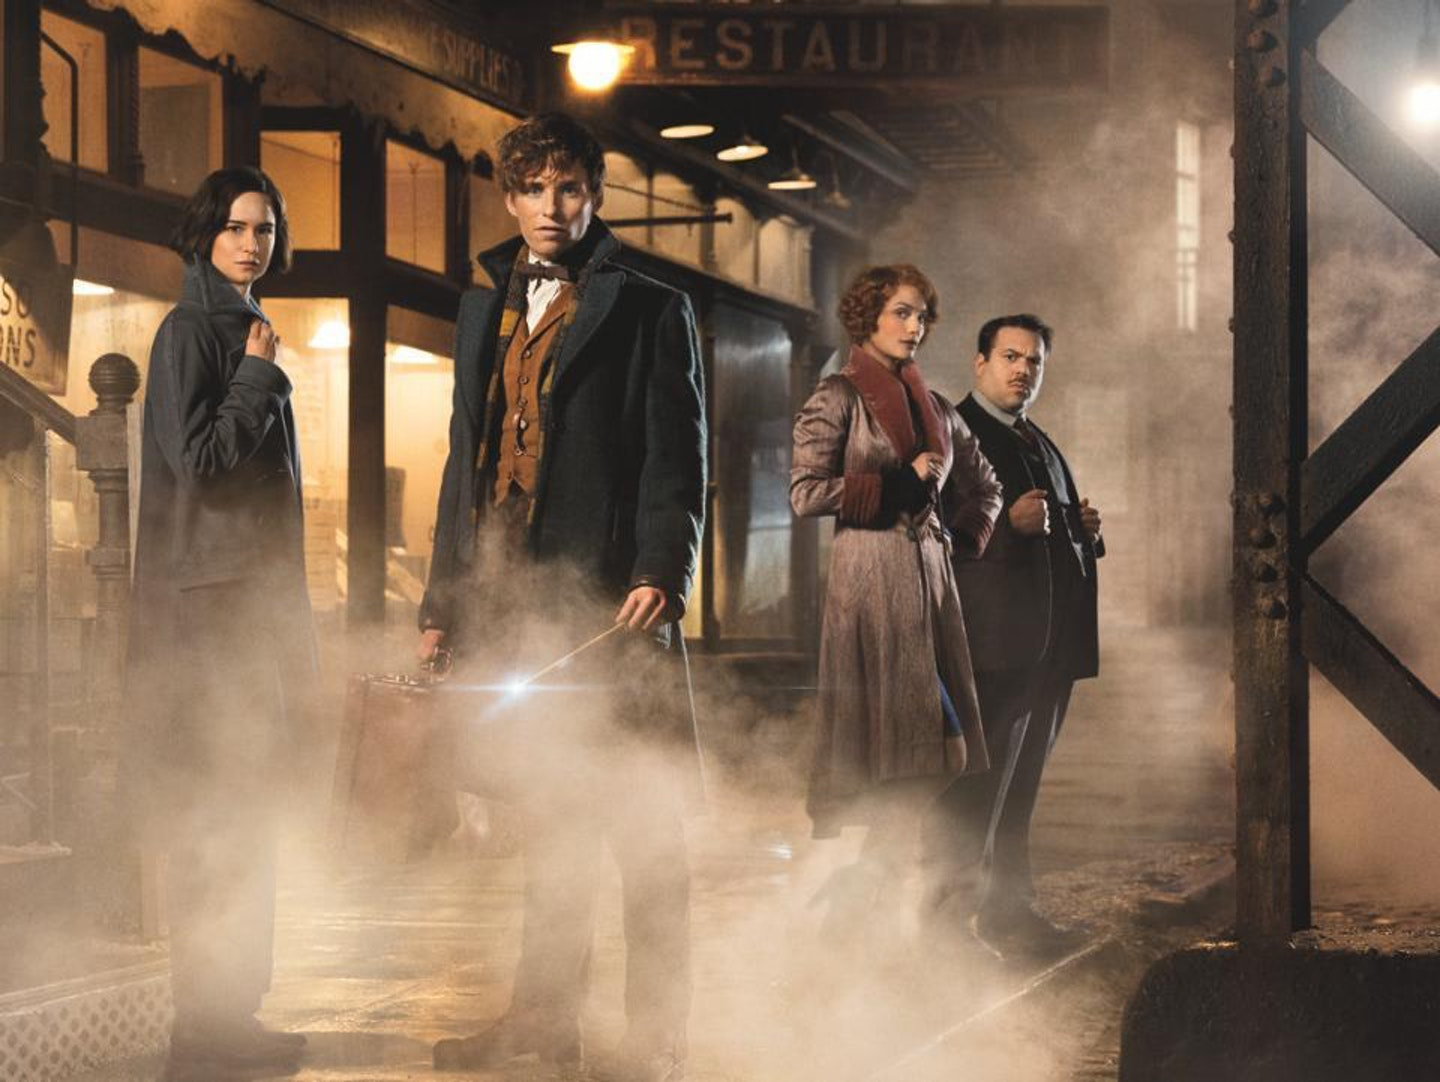 Fantastic Beasts tops the box office this week.